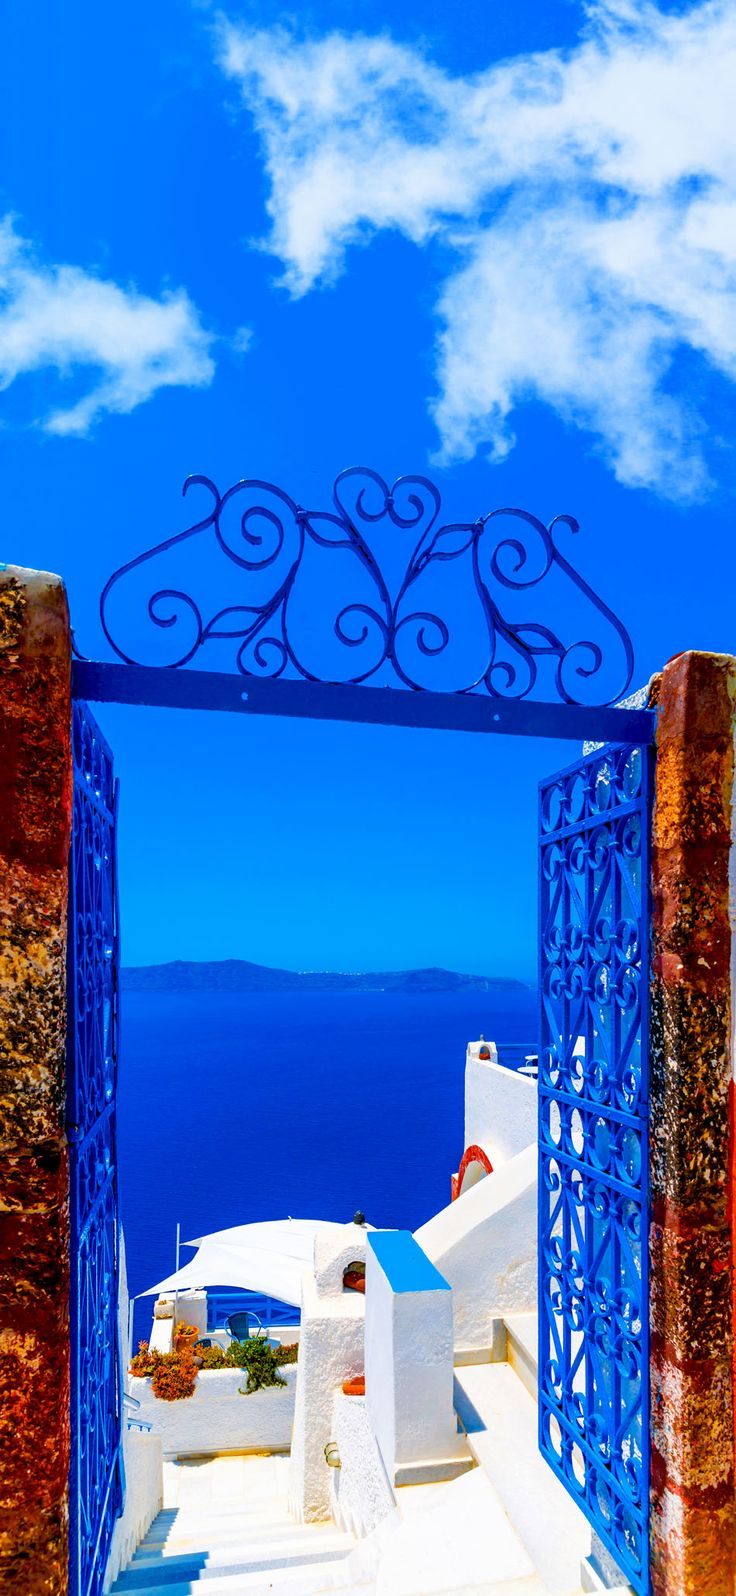 View to the sea and Volcano through a door, from Fira the capital of Santorini island in Greece    |    10 Breathtaking Photos of World's Most Romantic Island